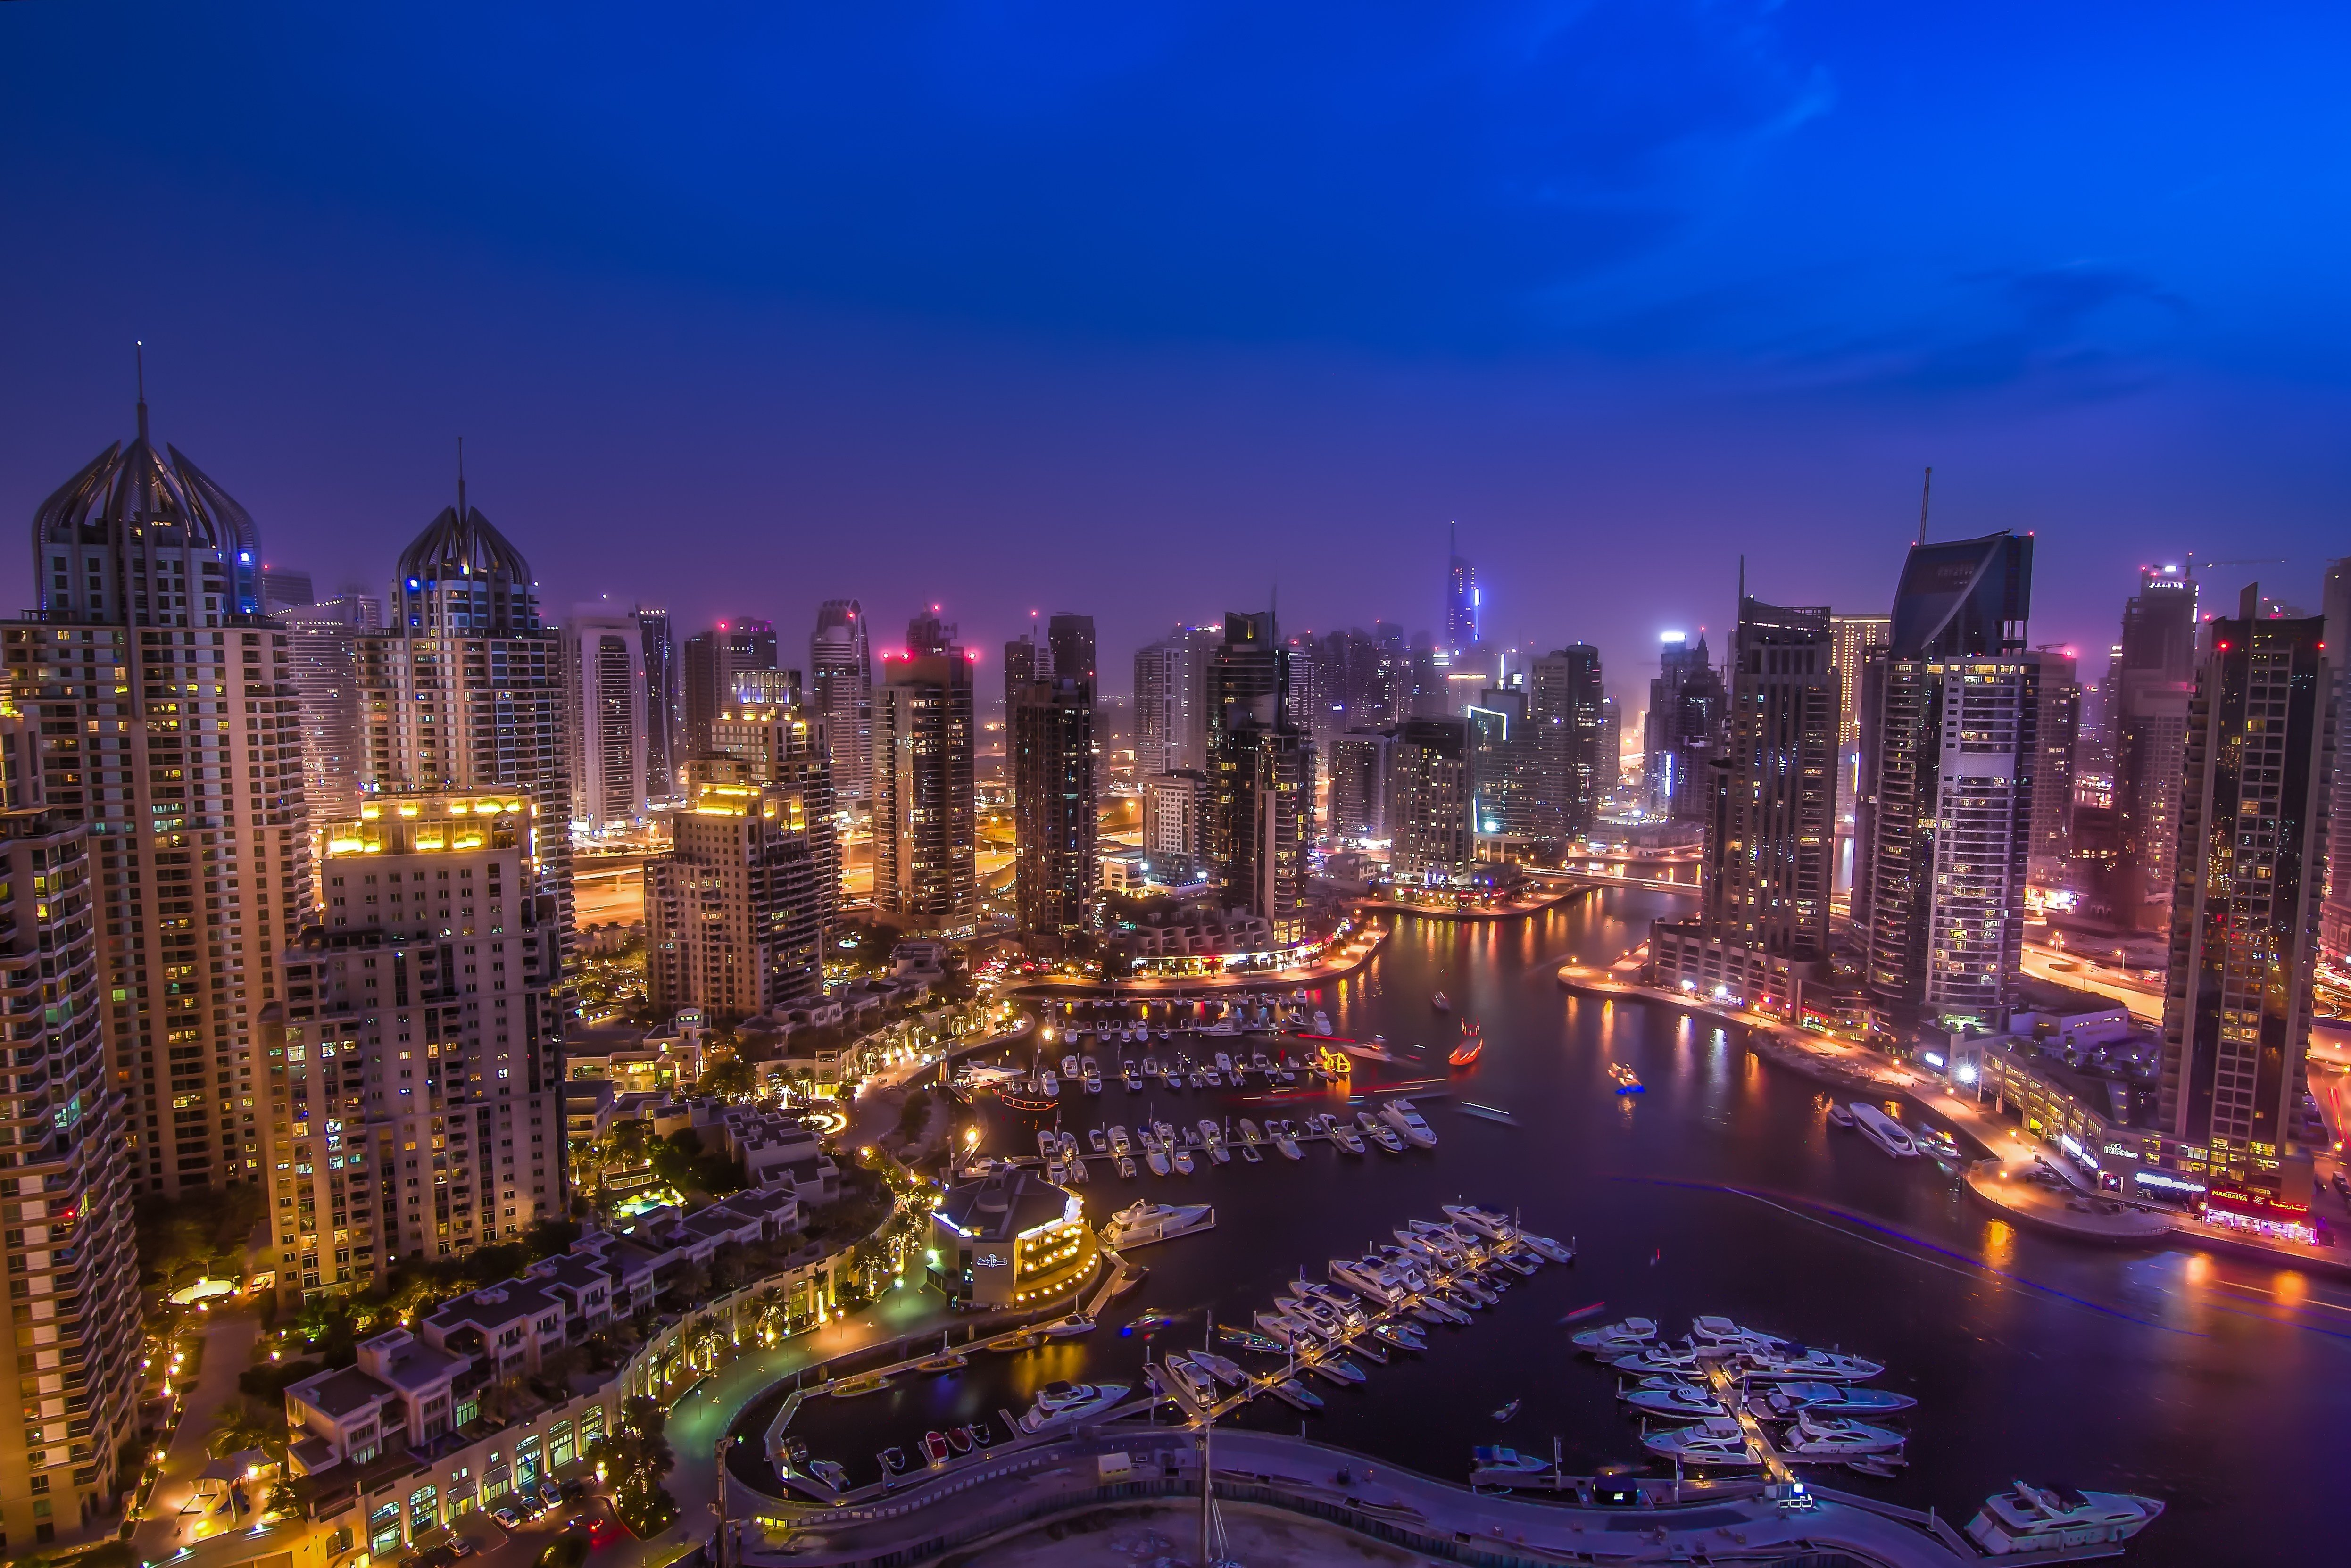 Beautiful Wallpaper Night Dubai - e7fa6bb6d44b810bcbd35b4dfcbee4b3  Pic-367061.jpg